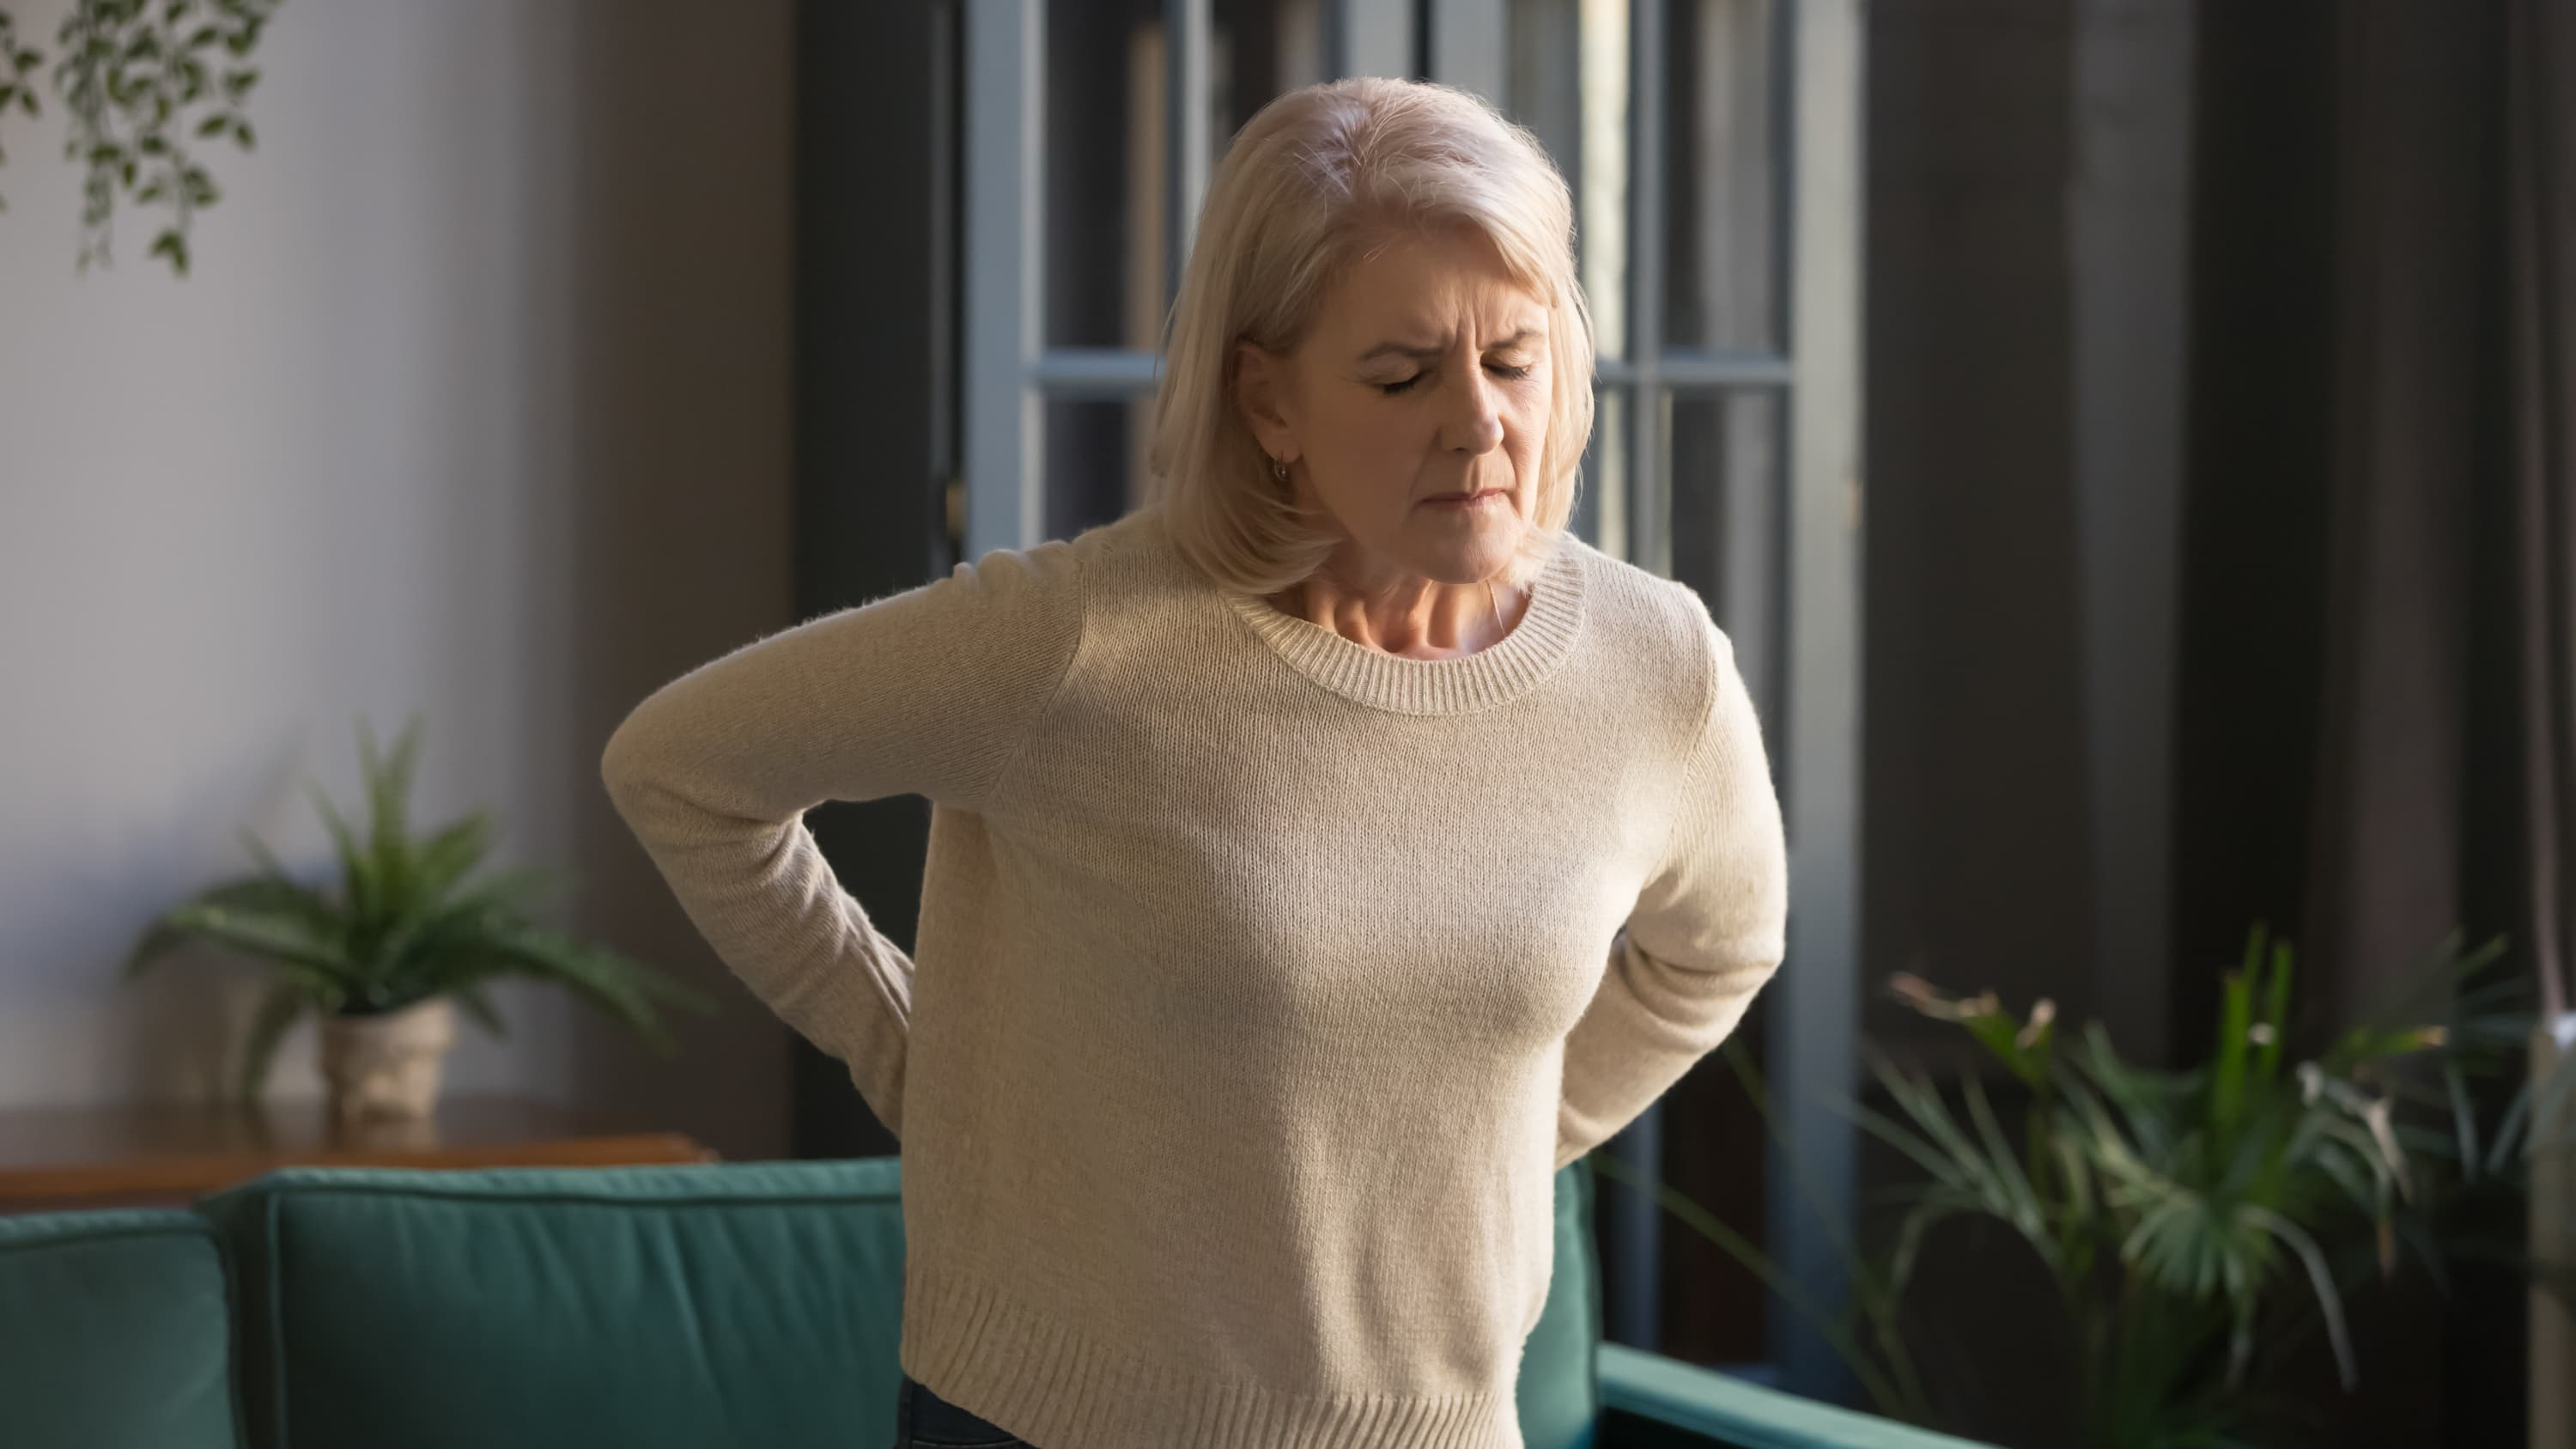 woman suffering from backache, possibly from fibromyalgia